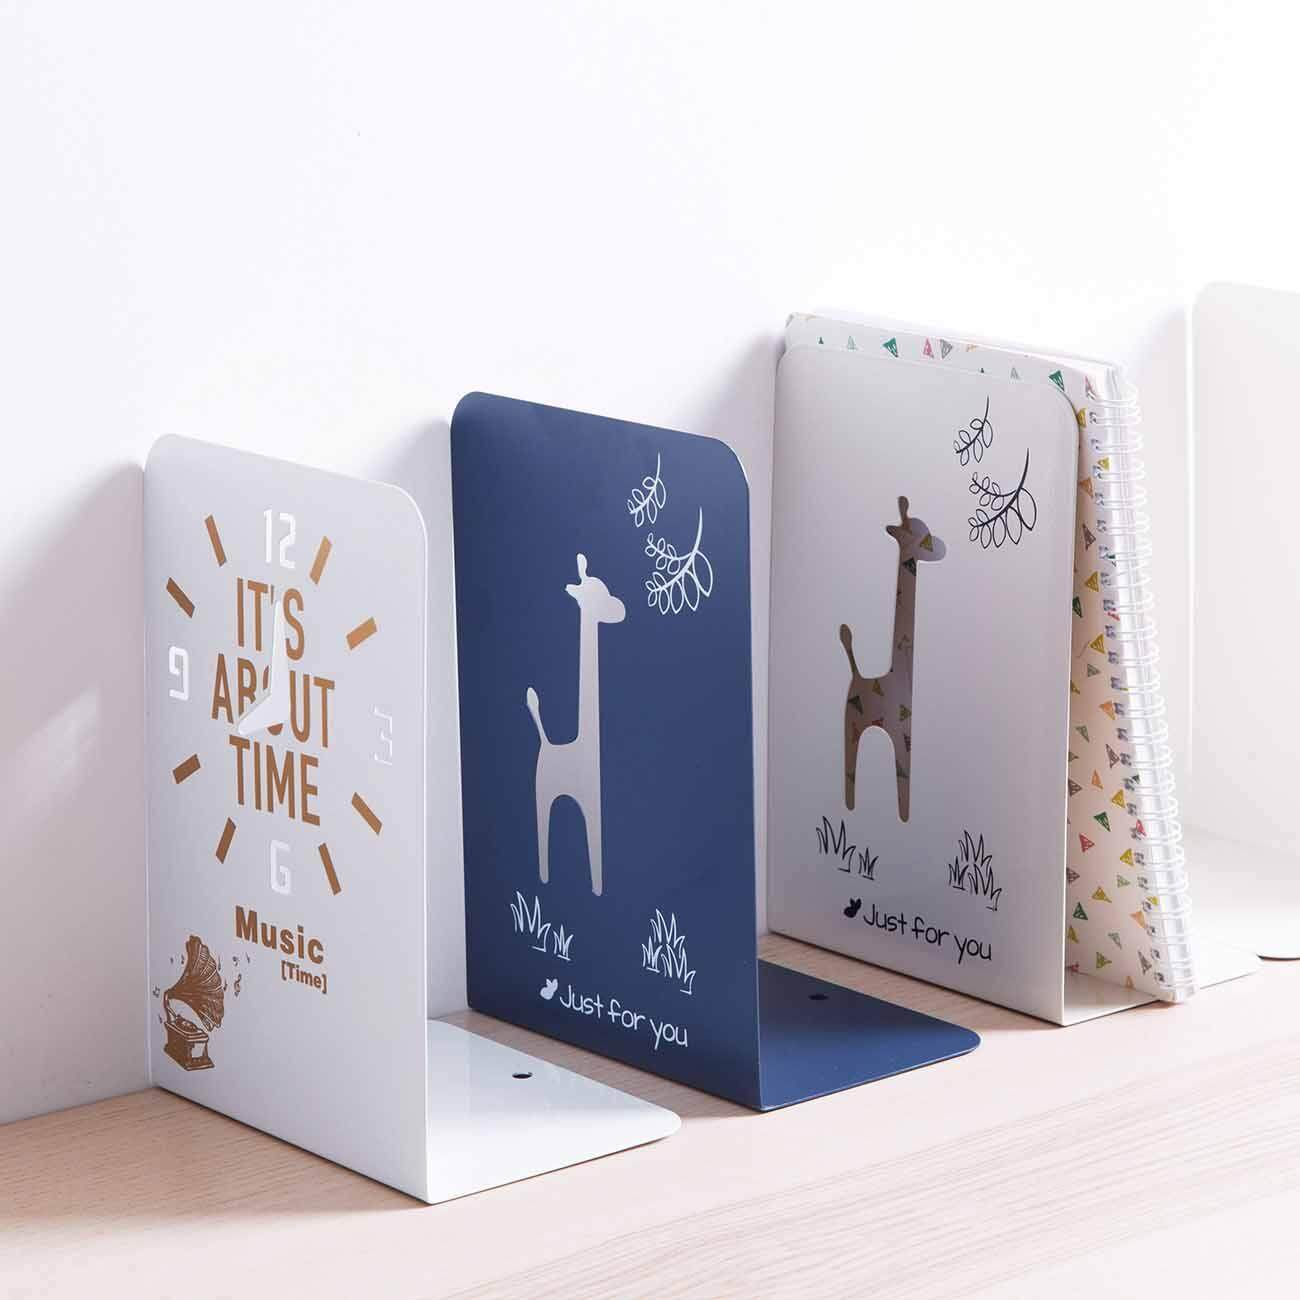 2 Pcs Metal Cartoon Book Creative Office Bookshelf Student Desk Bookends By Homenhome Official Store.